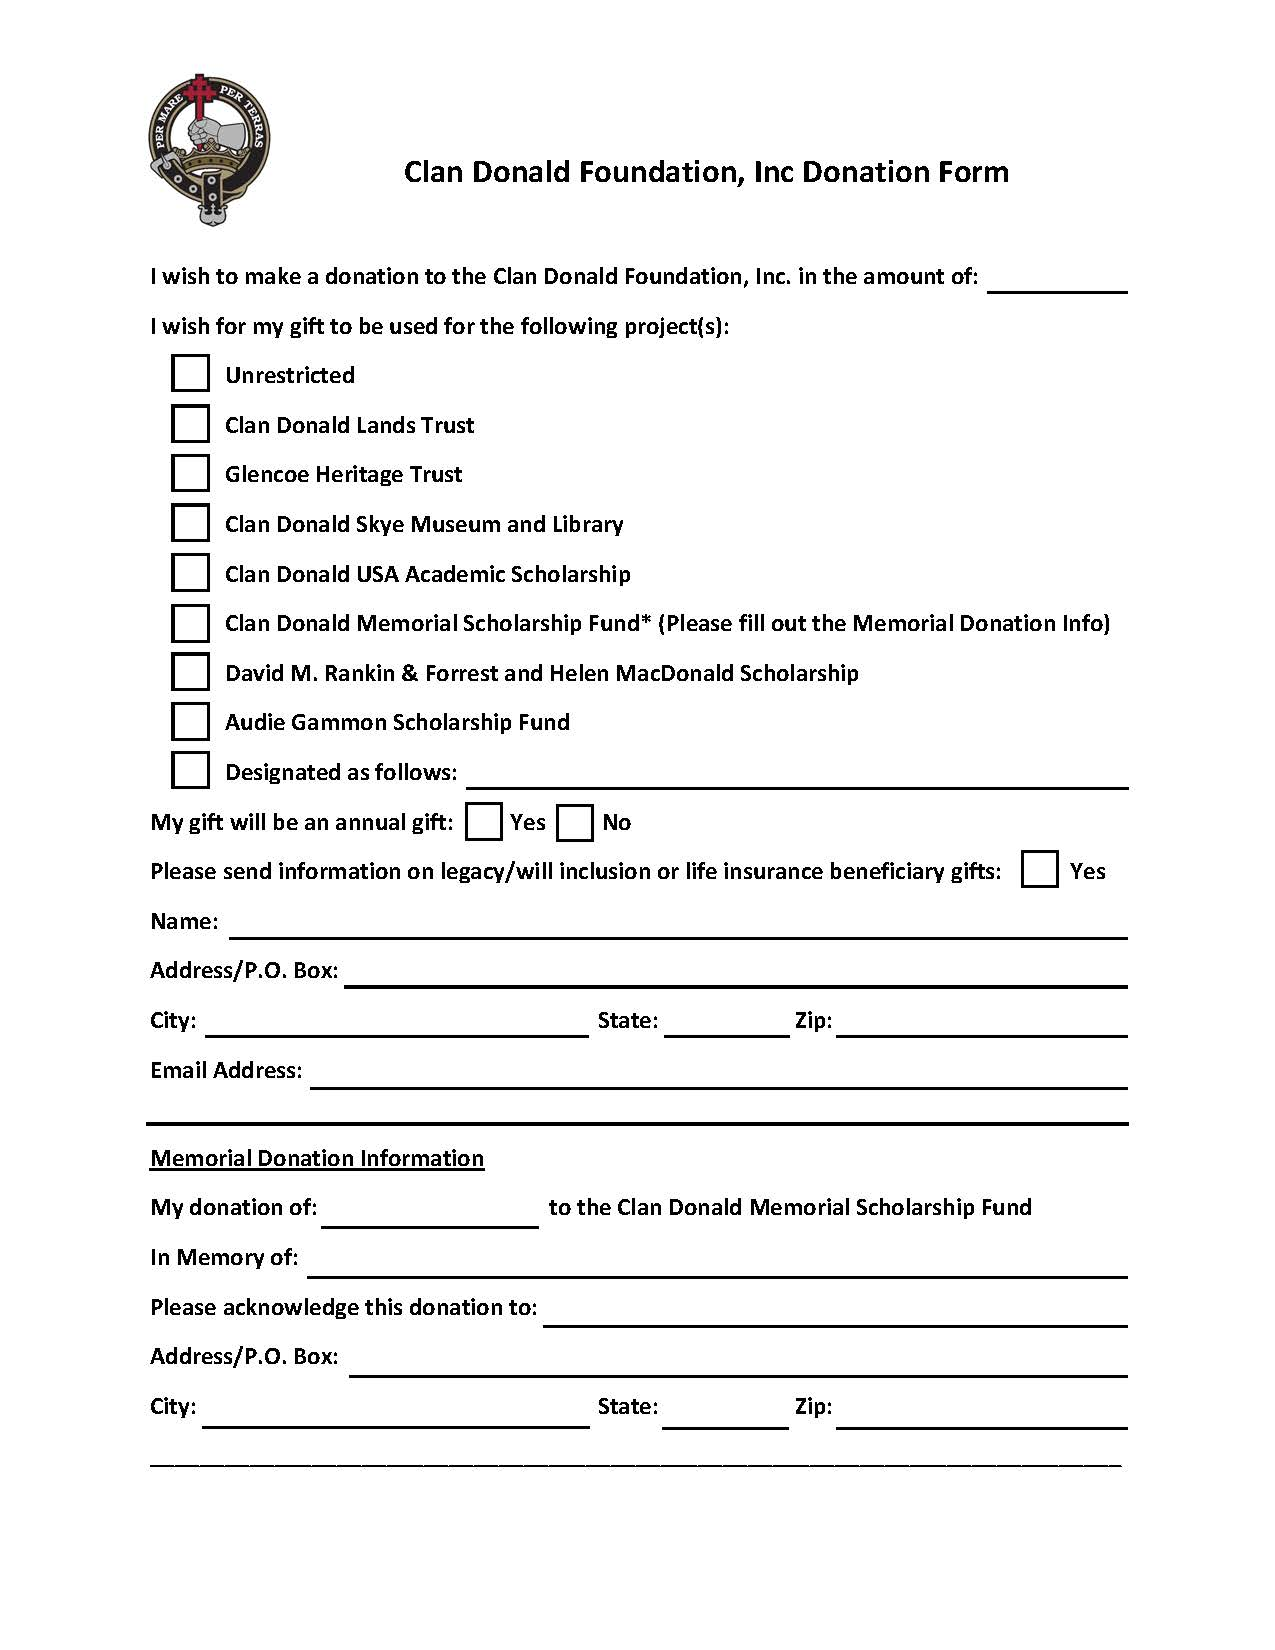 CD Foundation Donation Form